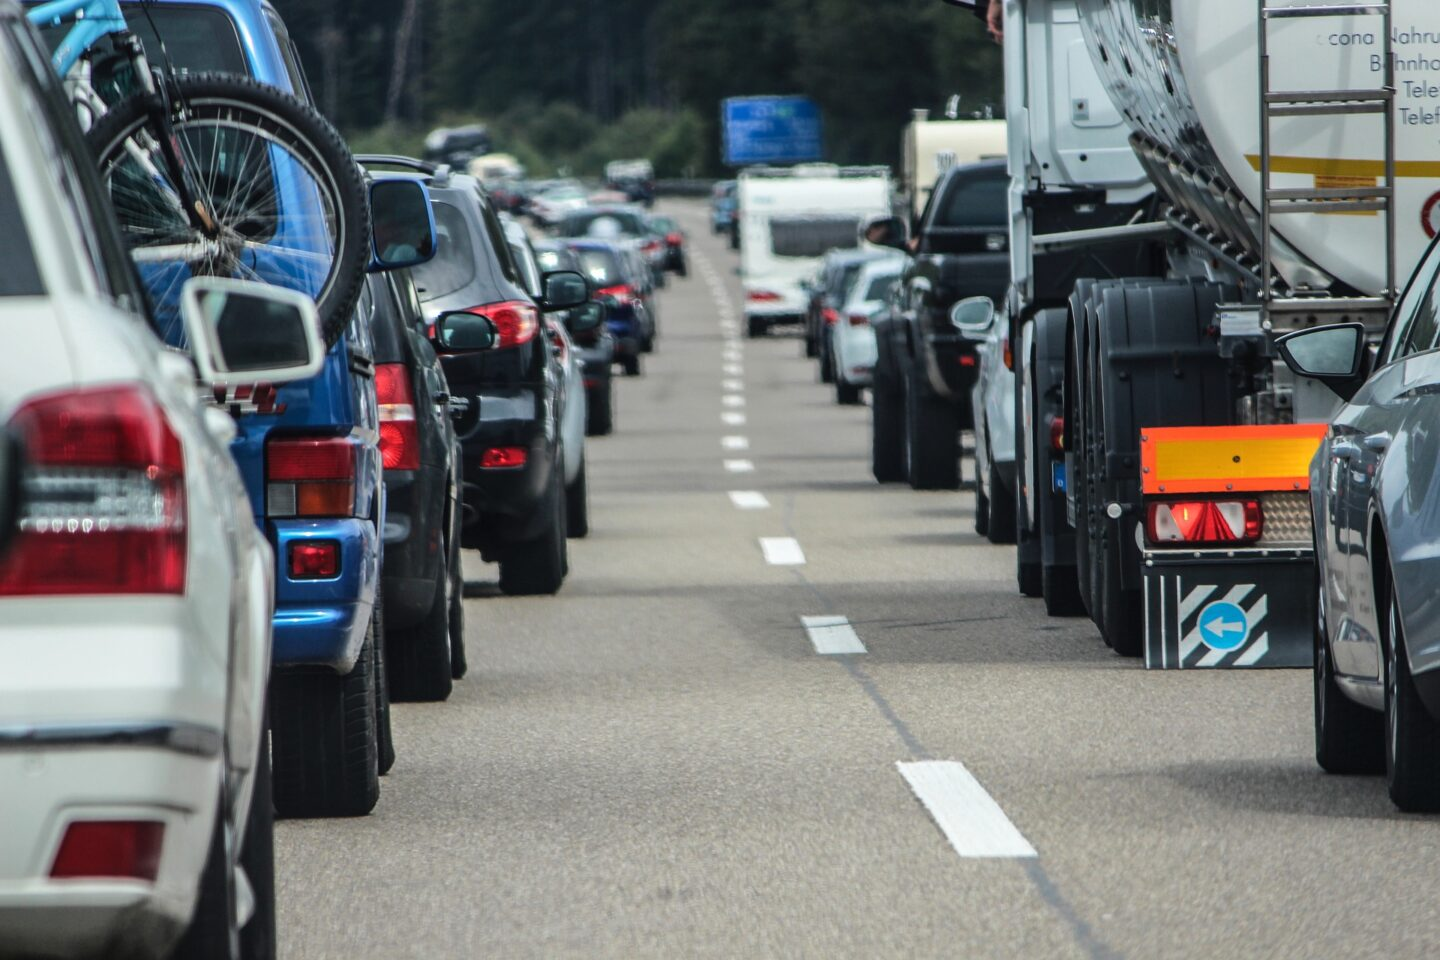 UK: Taking a Staycation? Avoid the Gridlock